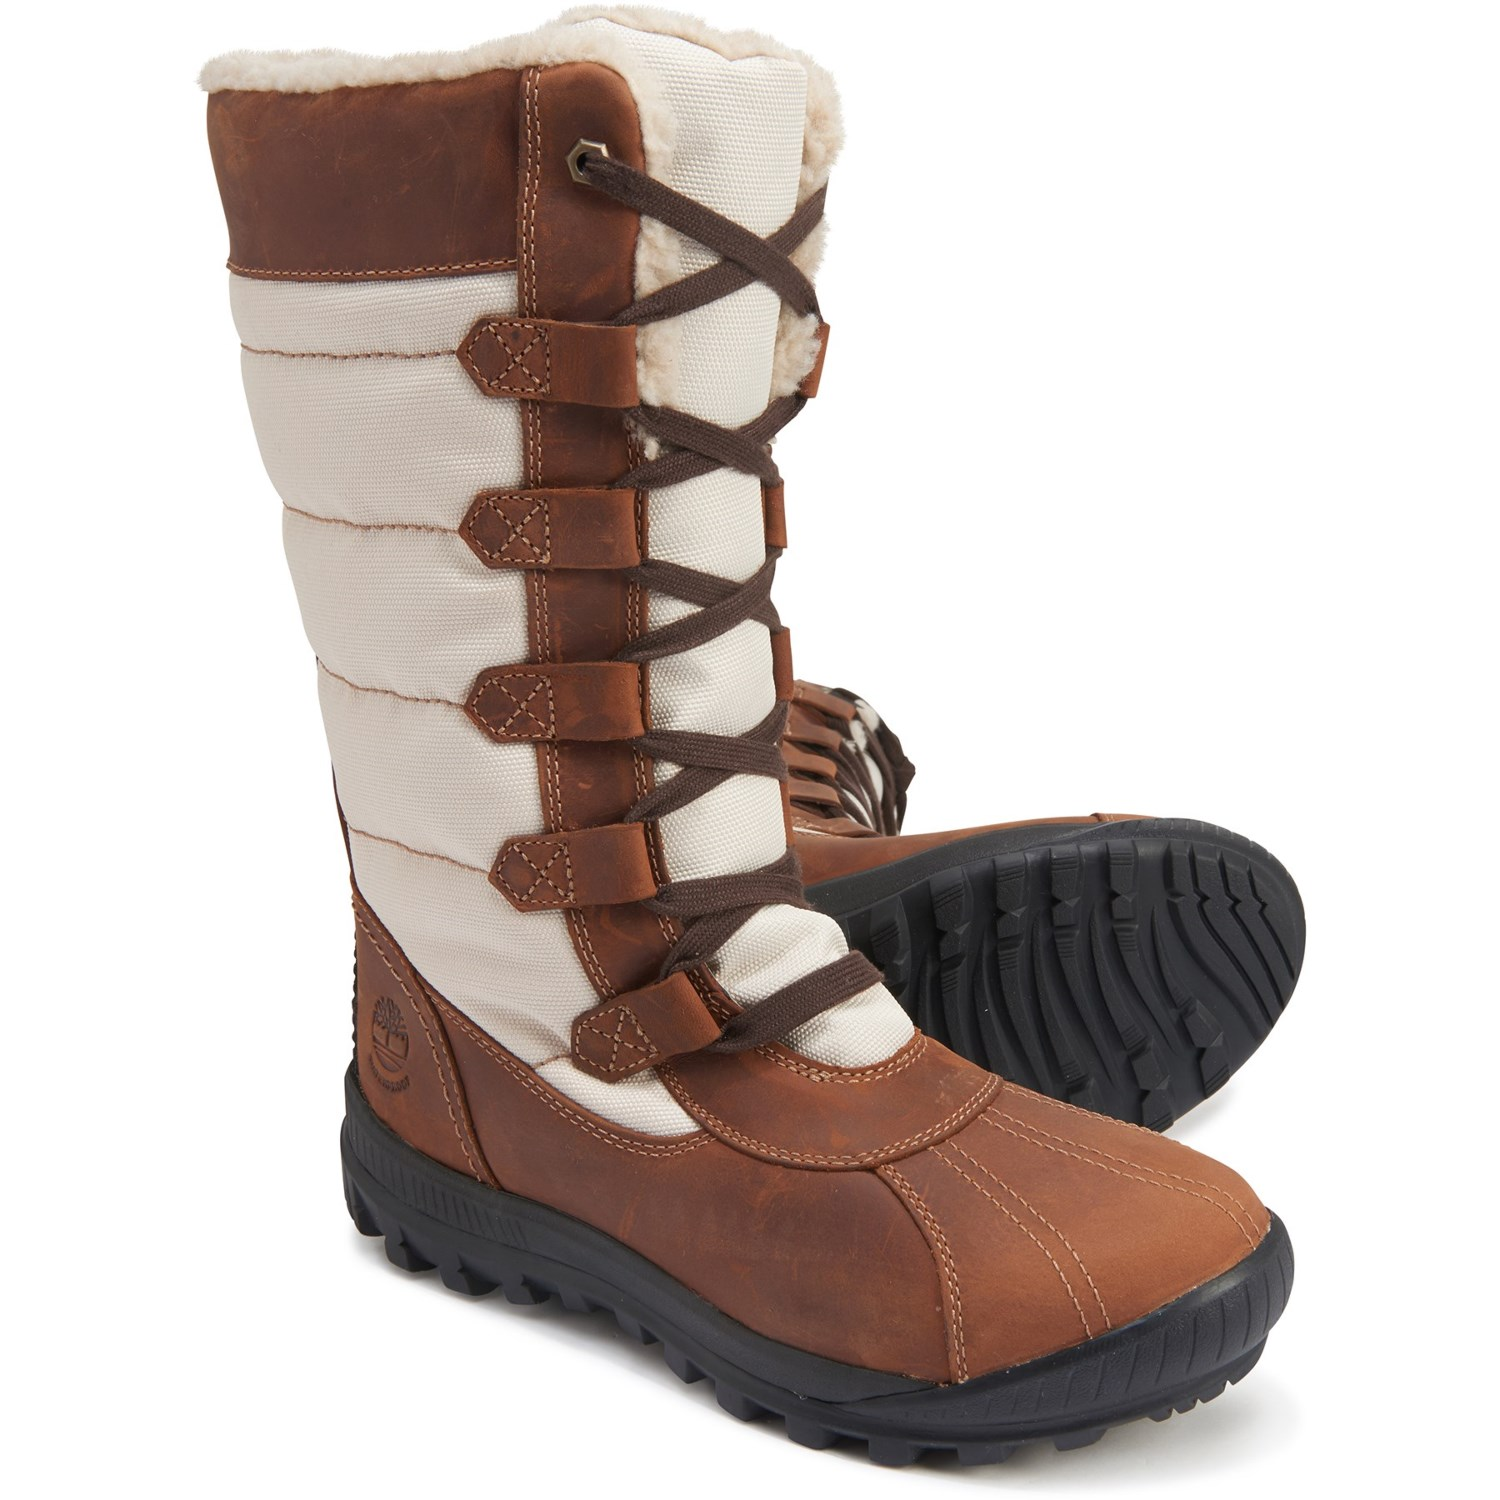 Timberland Mt. Hayes Tall Winter Boots